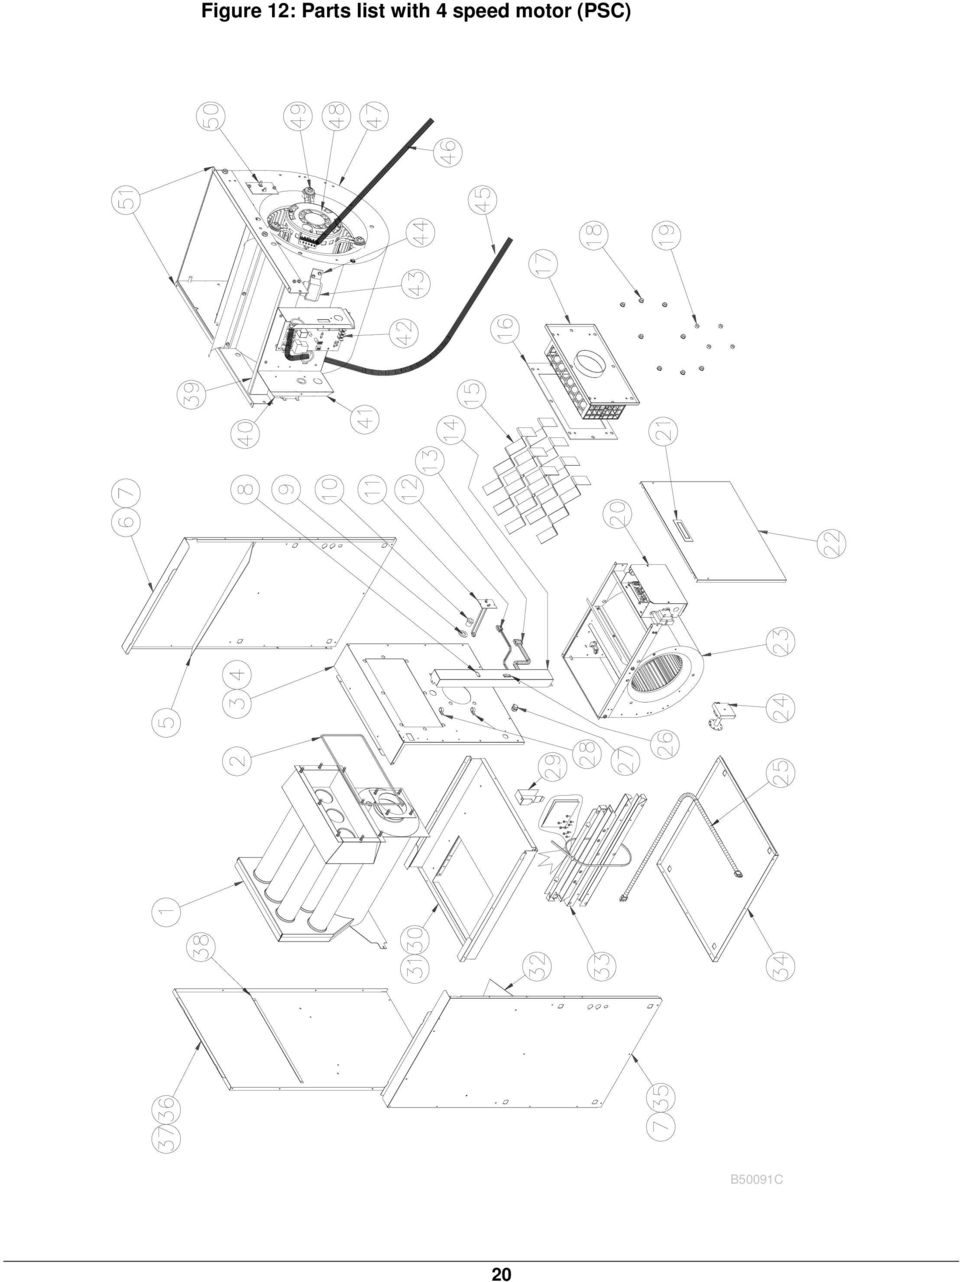 Wiring Diagram For Psc Oil Burner Motor Auto Electrical Acdelco 15071233 Plug Multiposition Fired Furnace Amp112sd Amp112sv